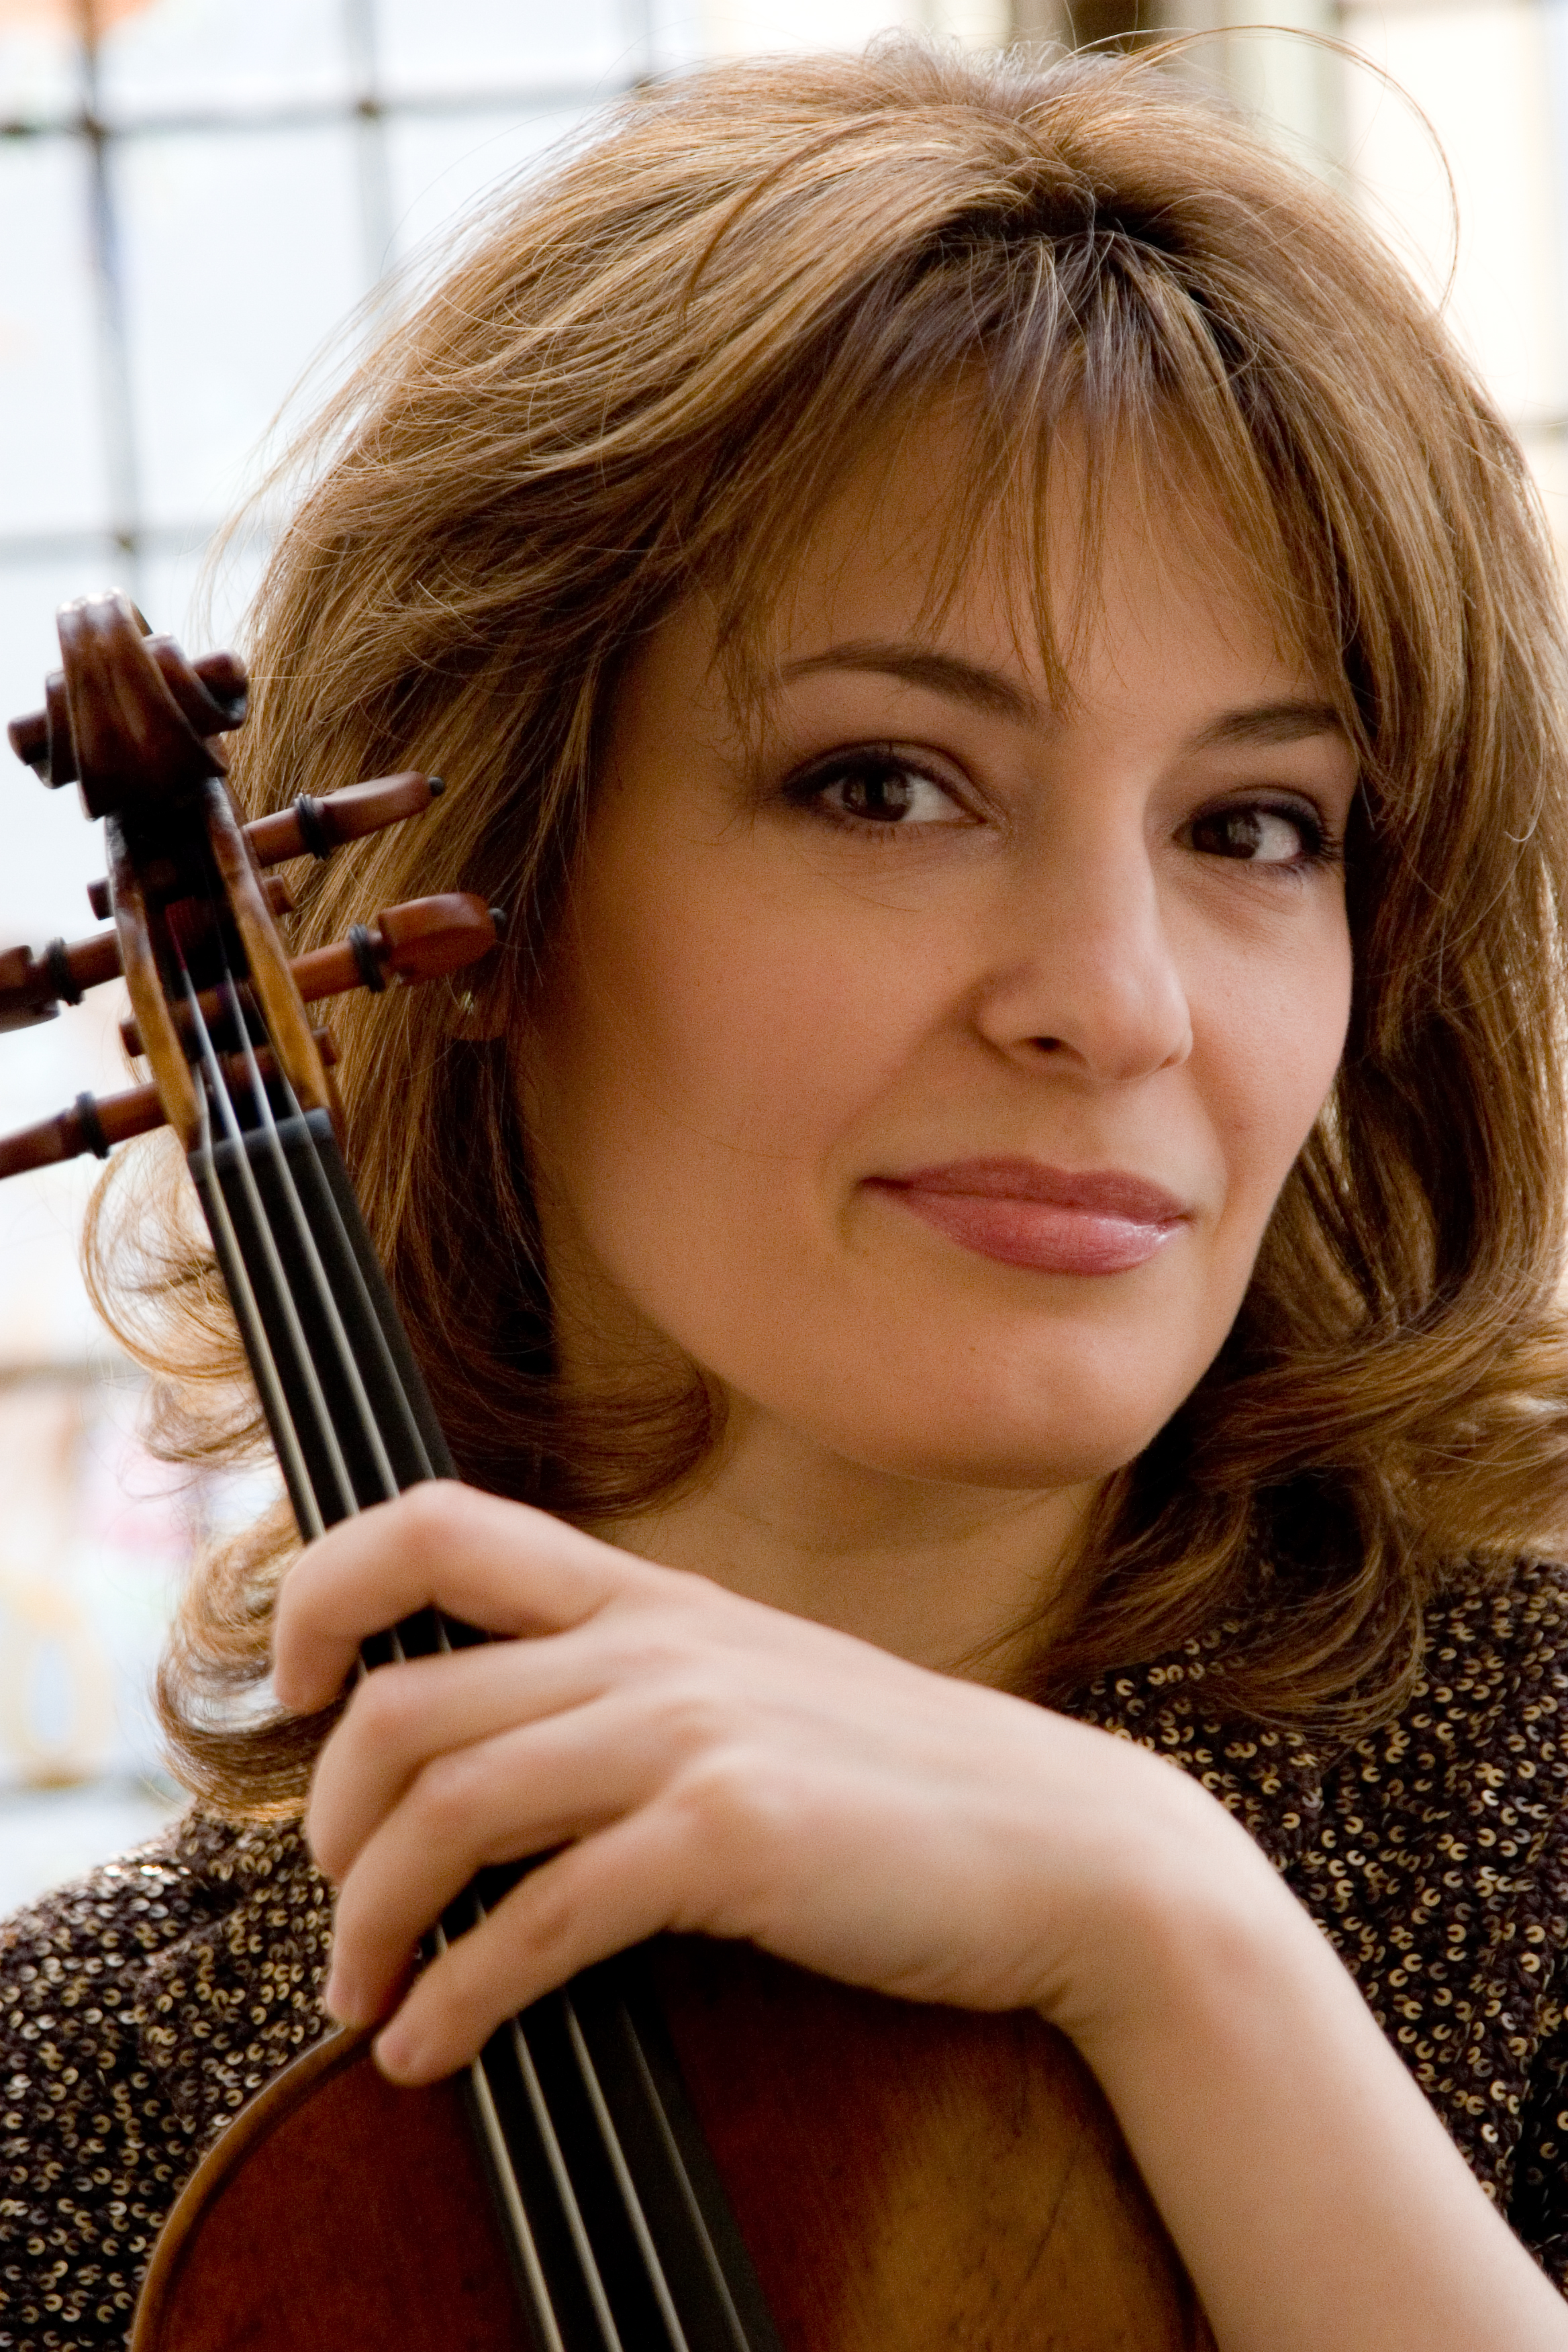 """Irina Muresanu   """"musical luster, melting lyricism and colorful conception made Irina Muresanu's performance especially admirable""""    - Los Angeles Times"""